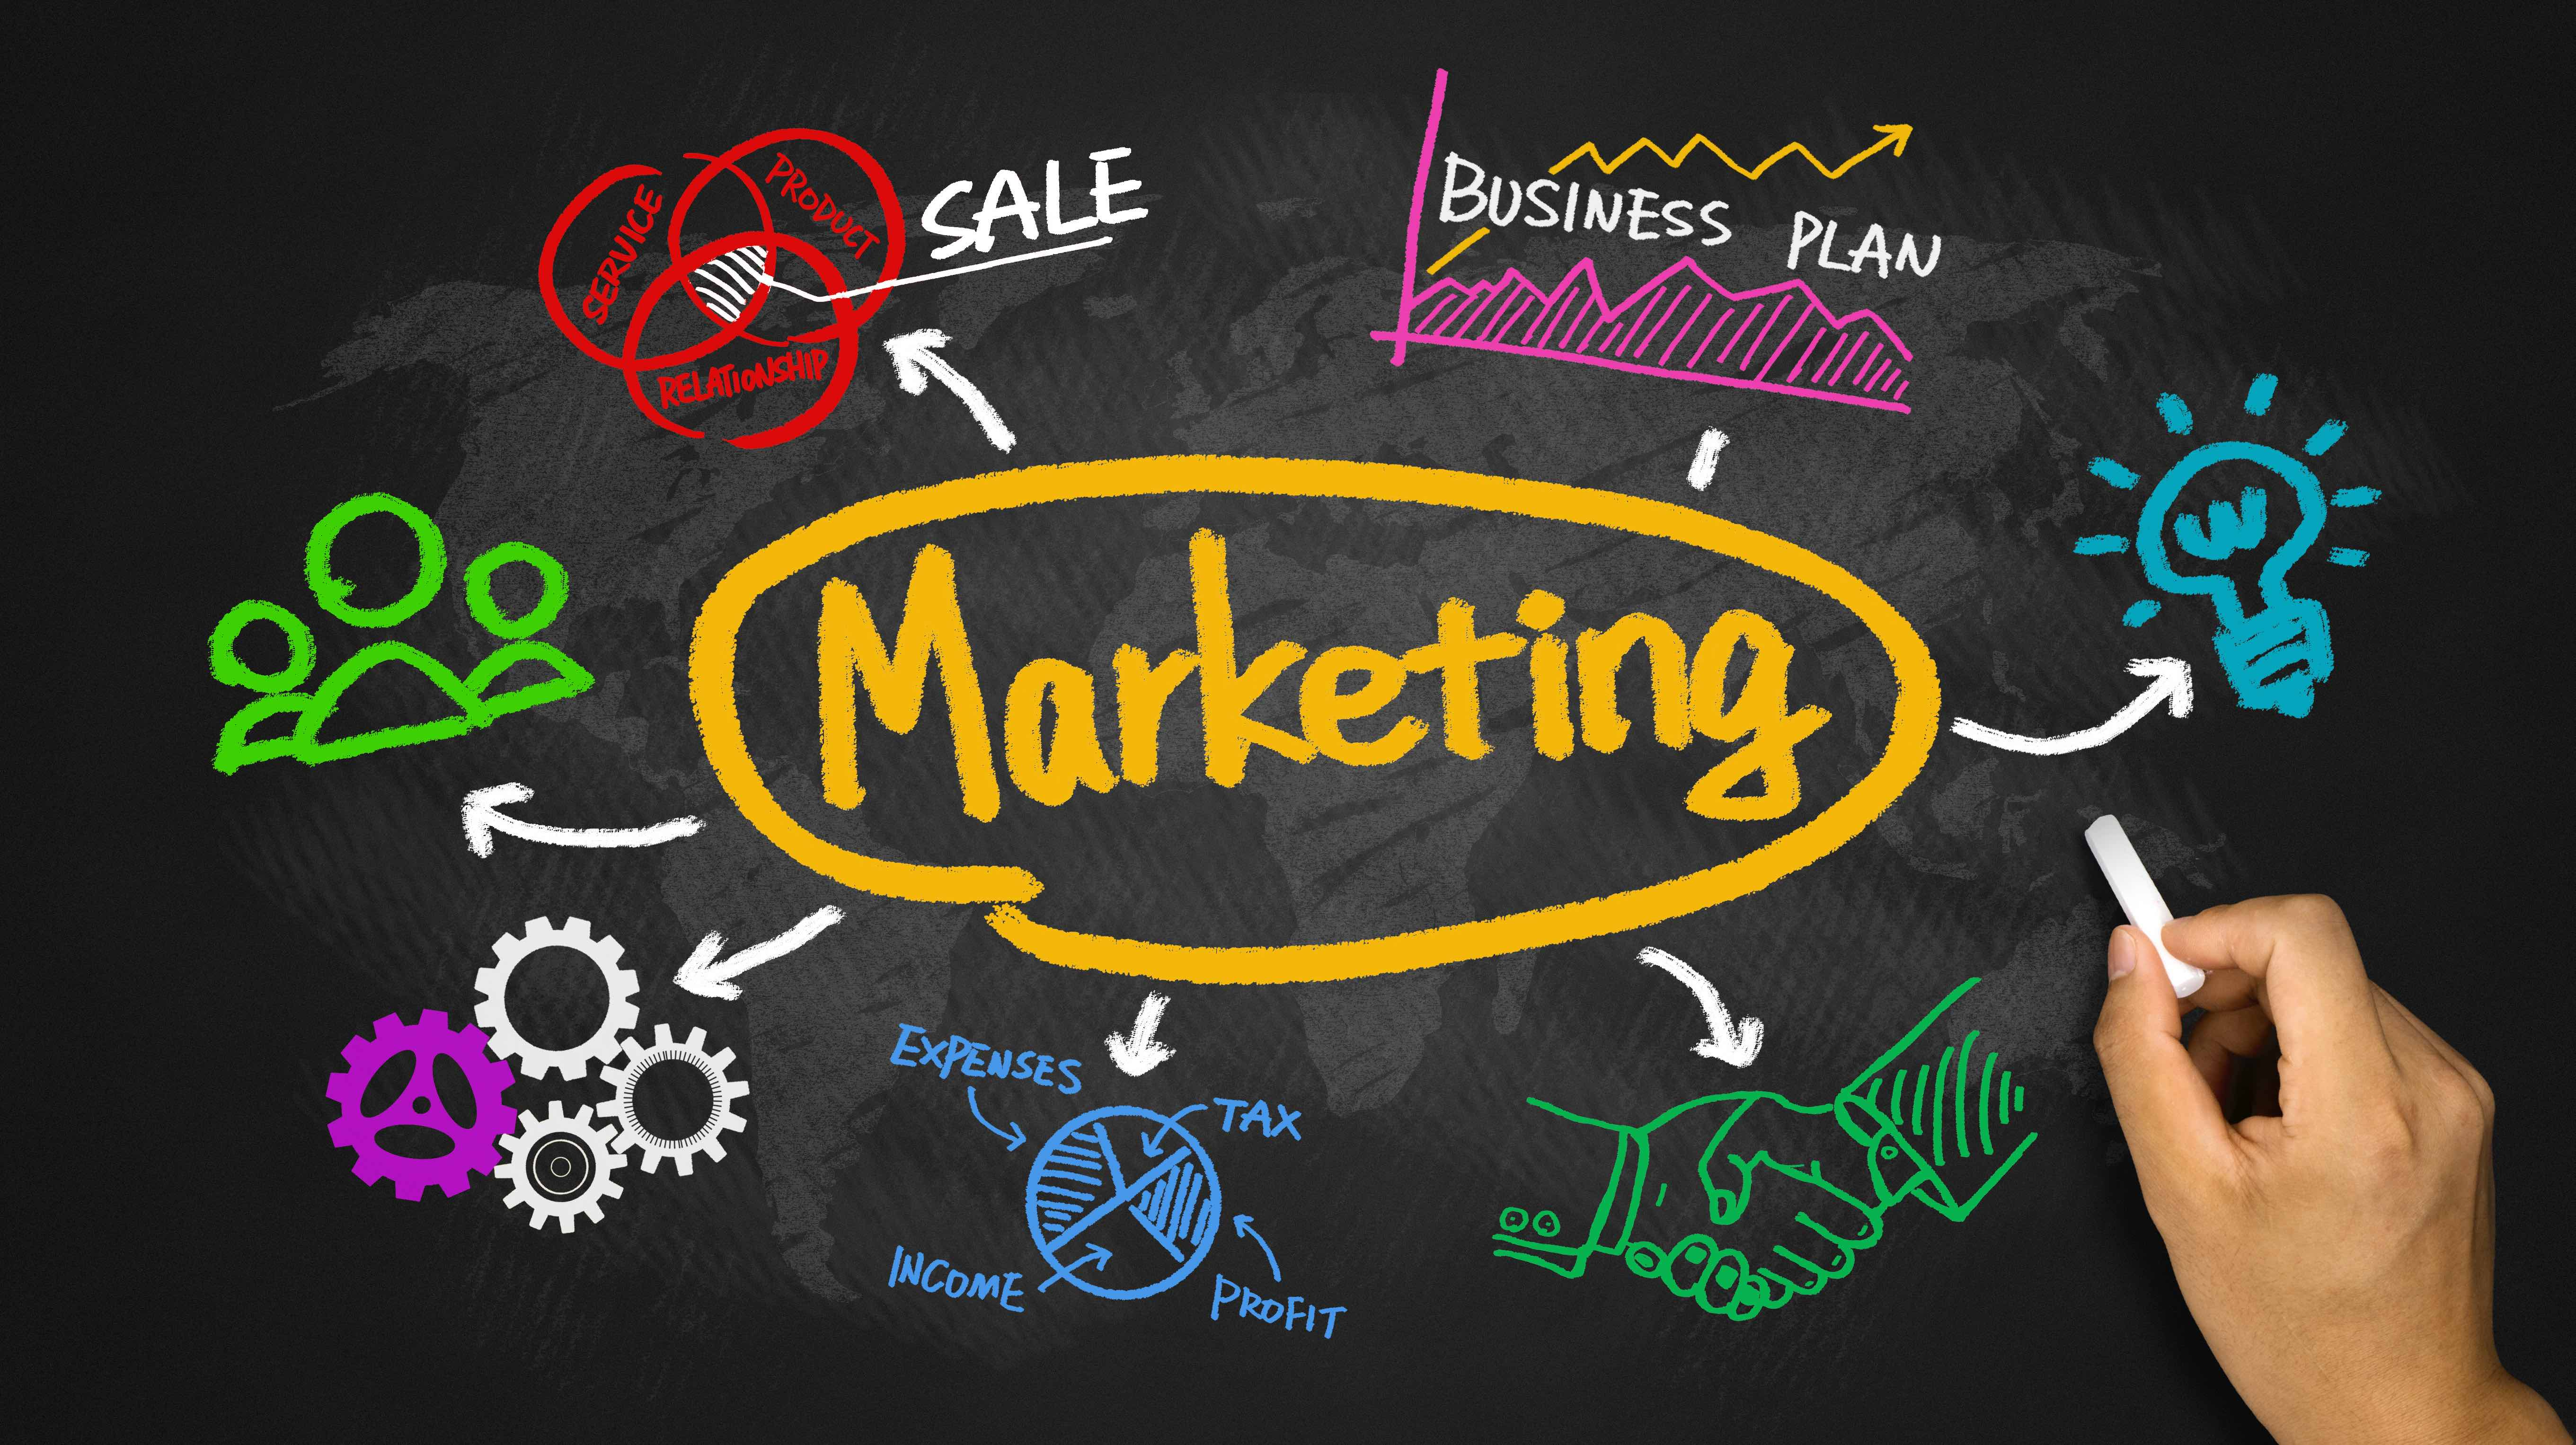 5443x3054 Marketing With Business Graph And Chart Hand Drawing On Blackboard